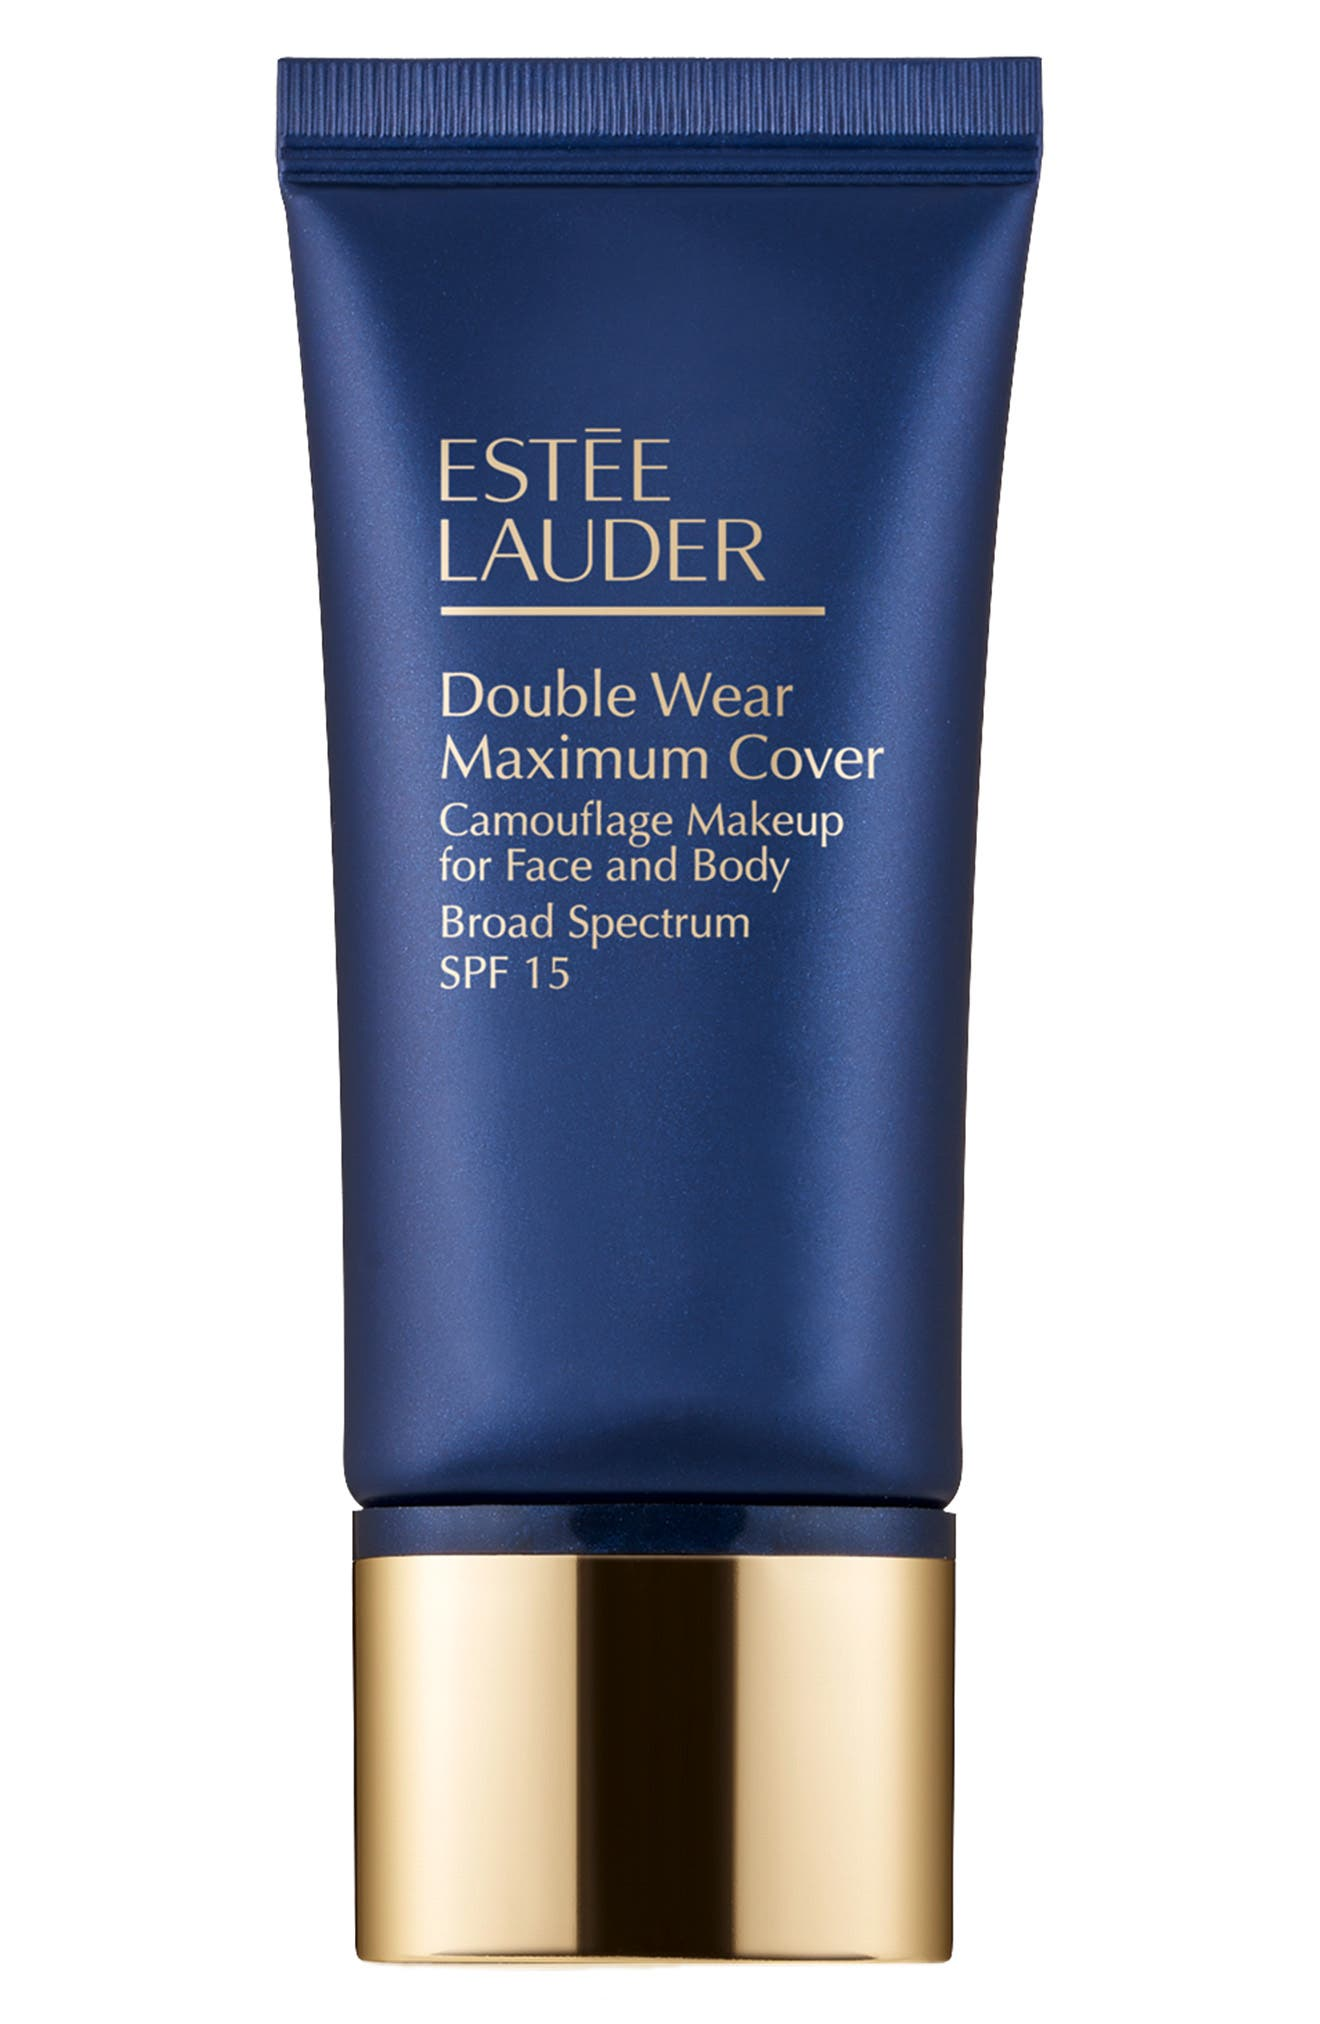 Double Wear Maximum Cover Camouflage Makeup for Face and Body SPF 15,                             Main thumbnail 1, color,